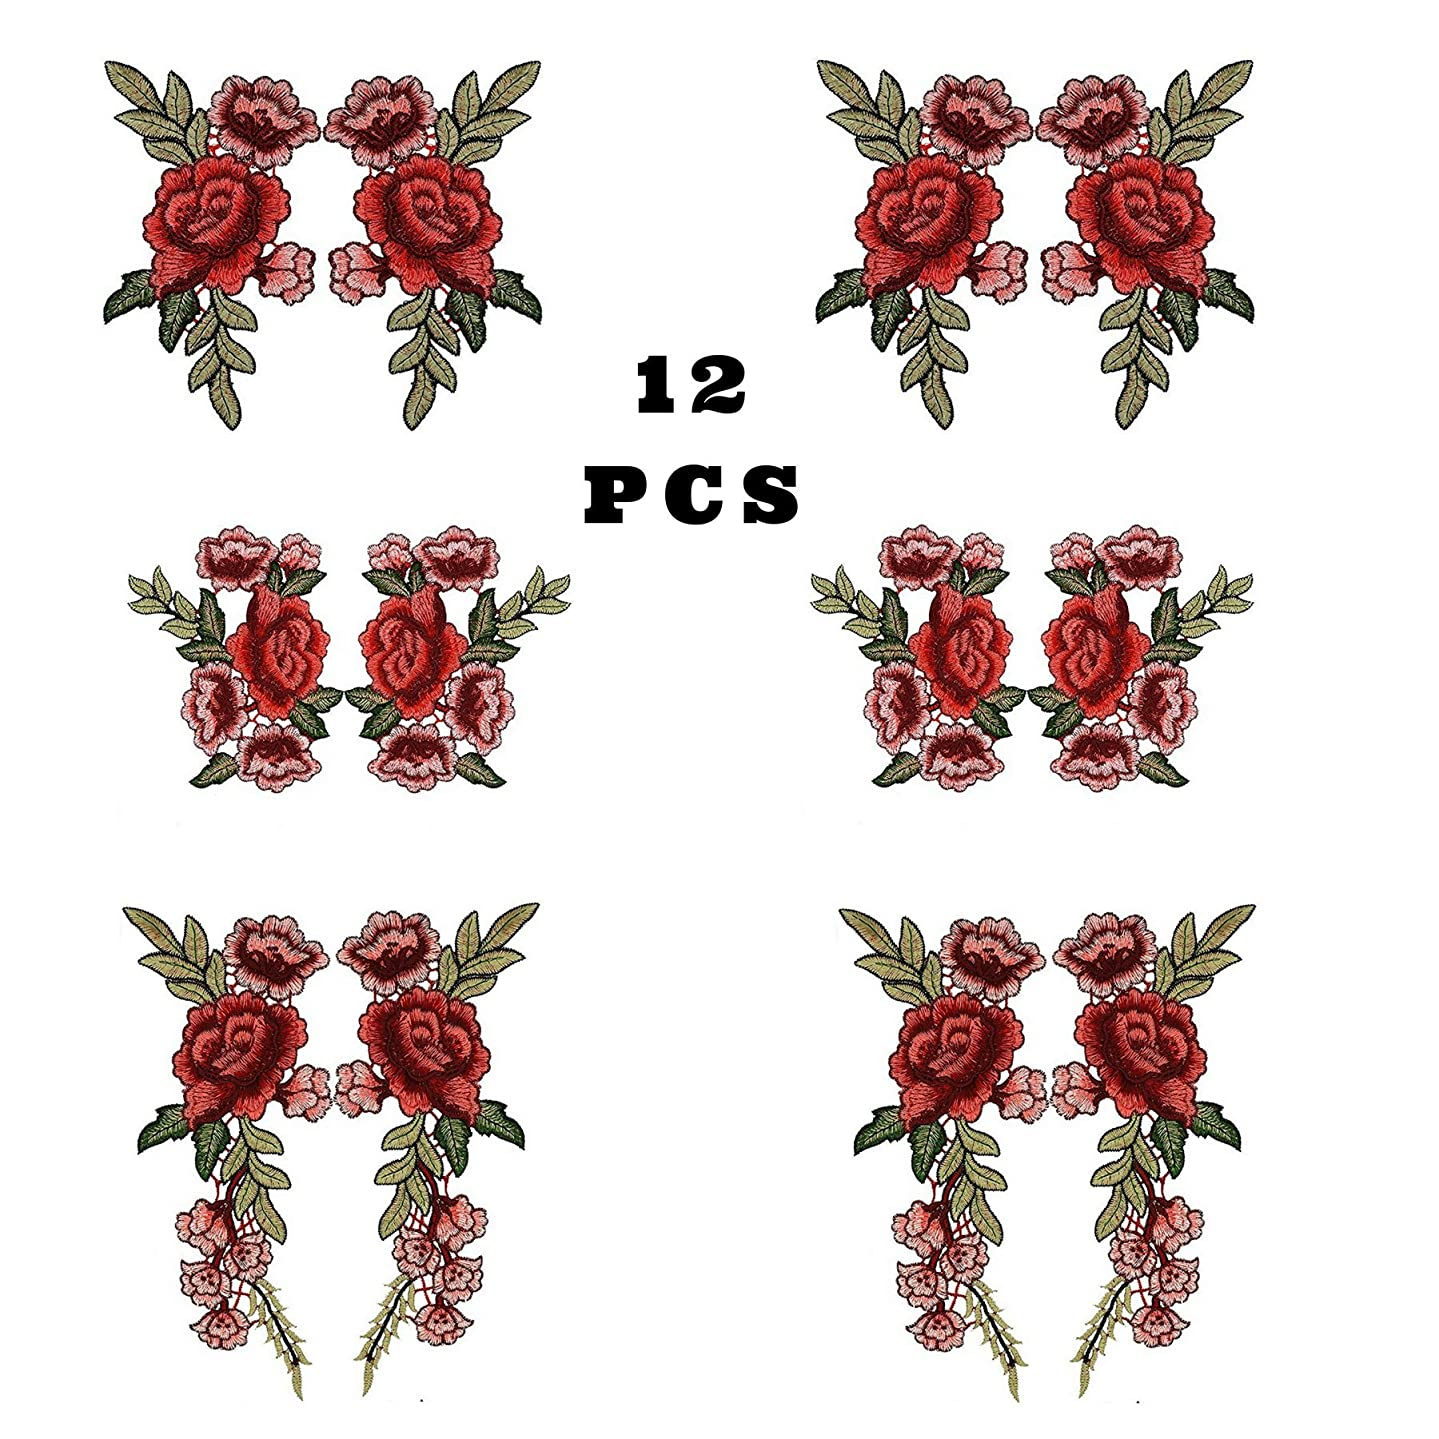 6 Set 12 PC Large Red flower patch, floral applique, Sew On Patches,Rose Patch For clothes, Jeans, Jackets, Bags, Shoes, DIY Craft Supply